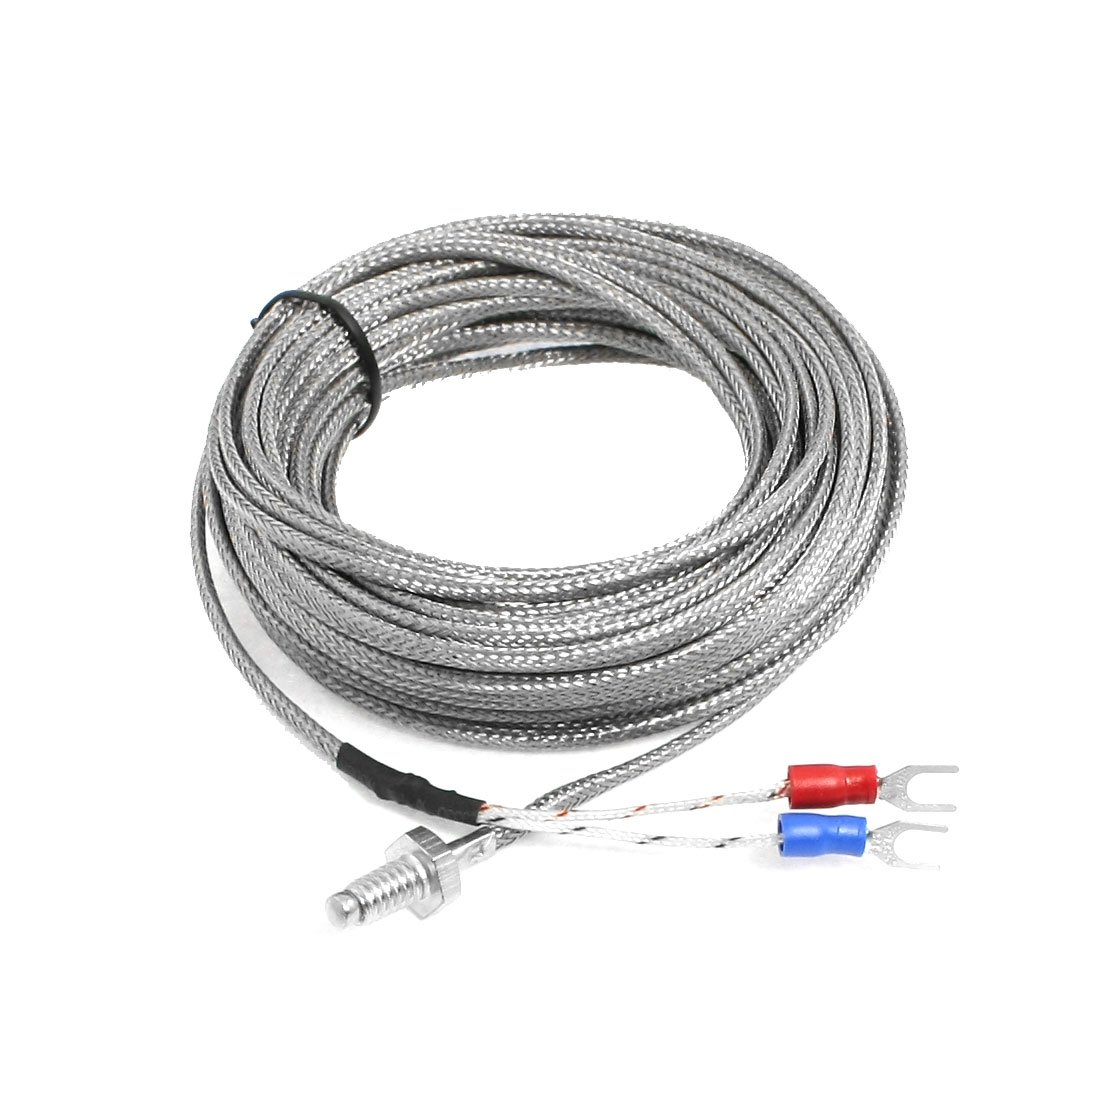 Temperature Controller 6mm Dia K Type Earth Thermocouple Probe 10M Sourcingmap US-SA-AJD-14767